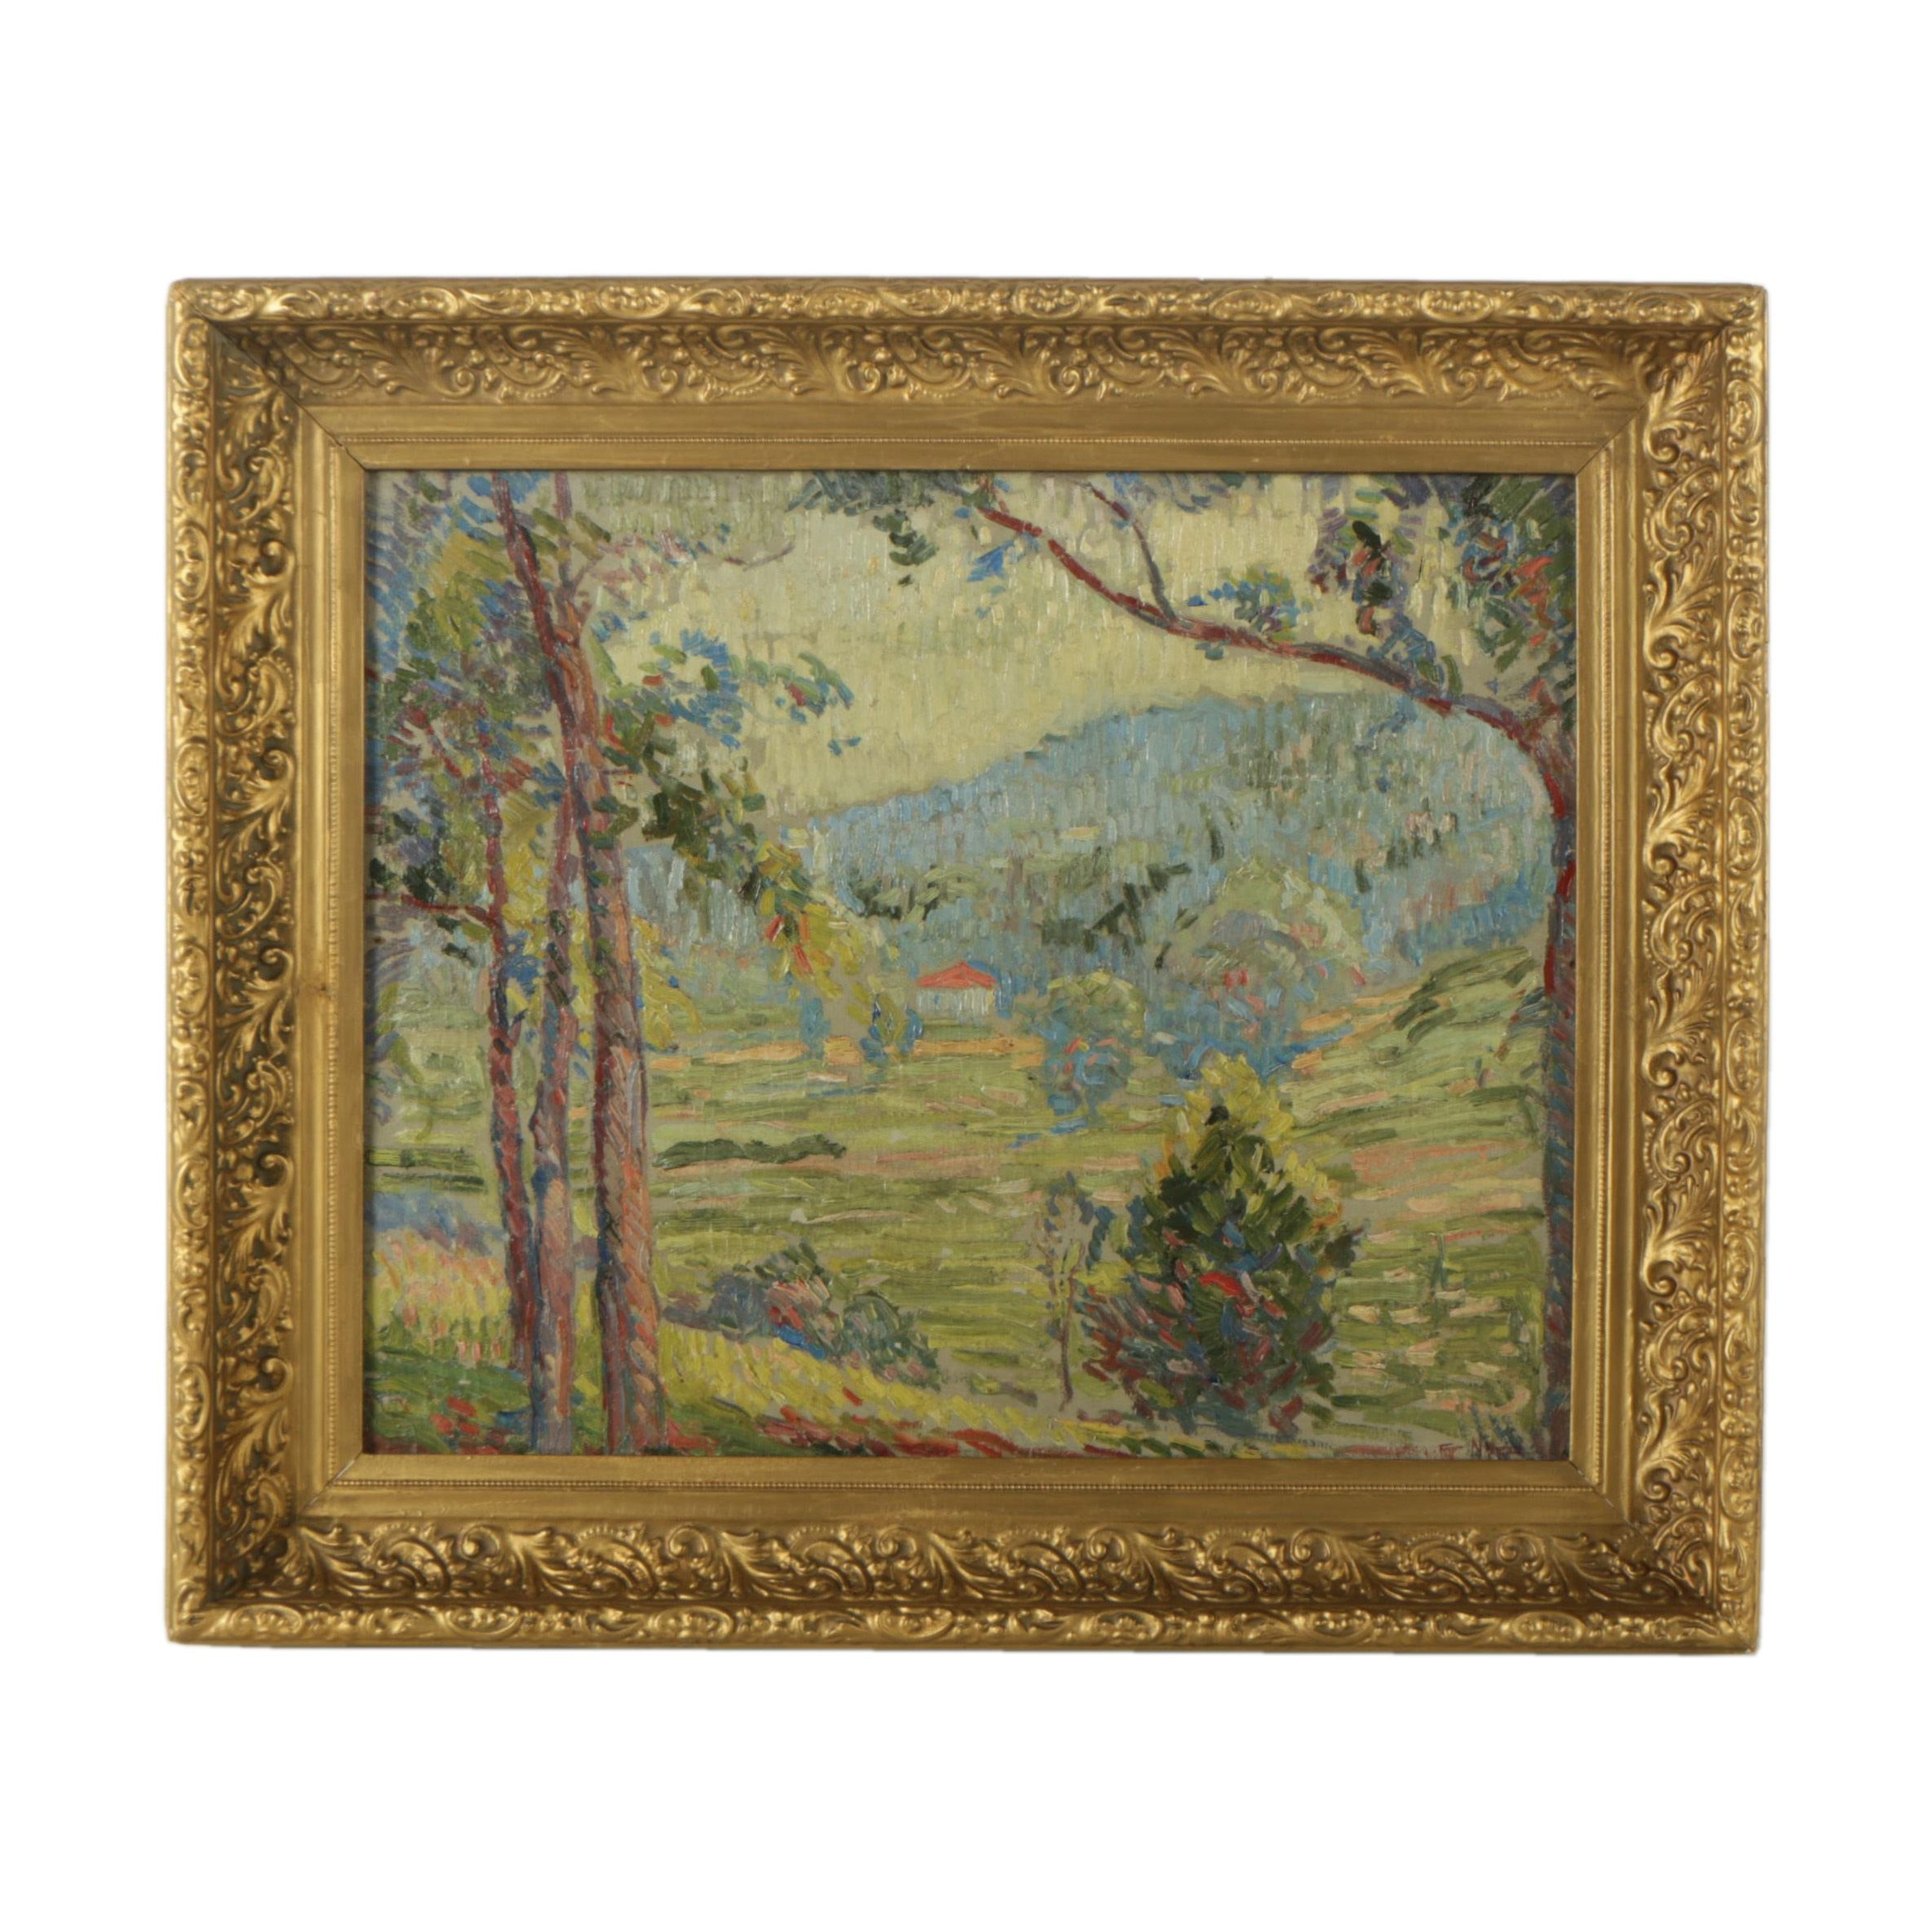 Edgar Nye Oil Painting on Canvas of Pastoral Landscape